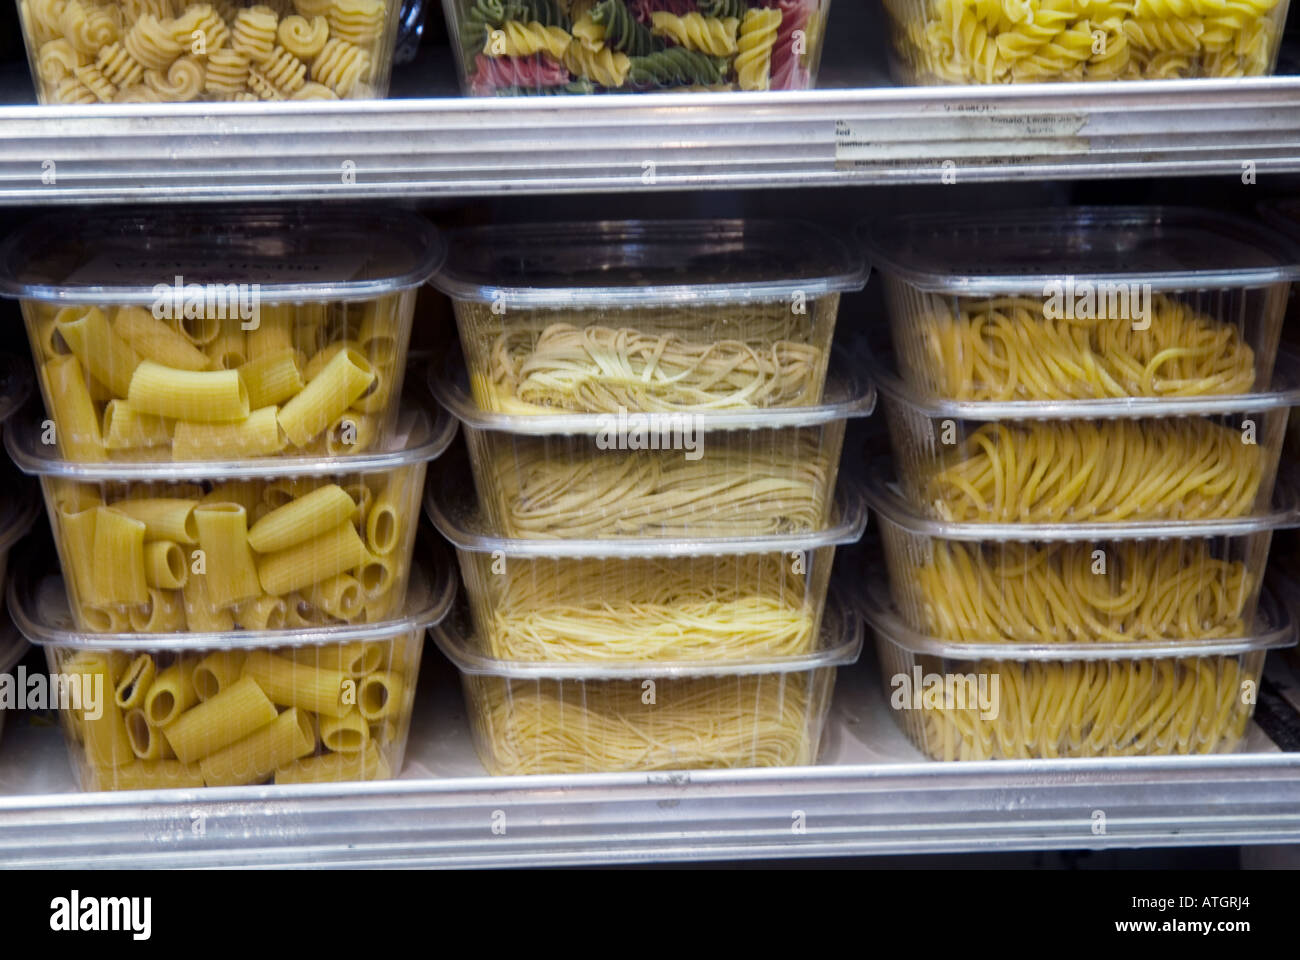 Is It Ok To Store Food In Plastic Containers